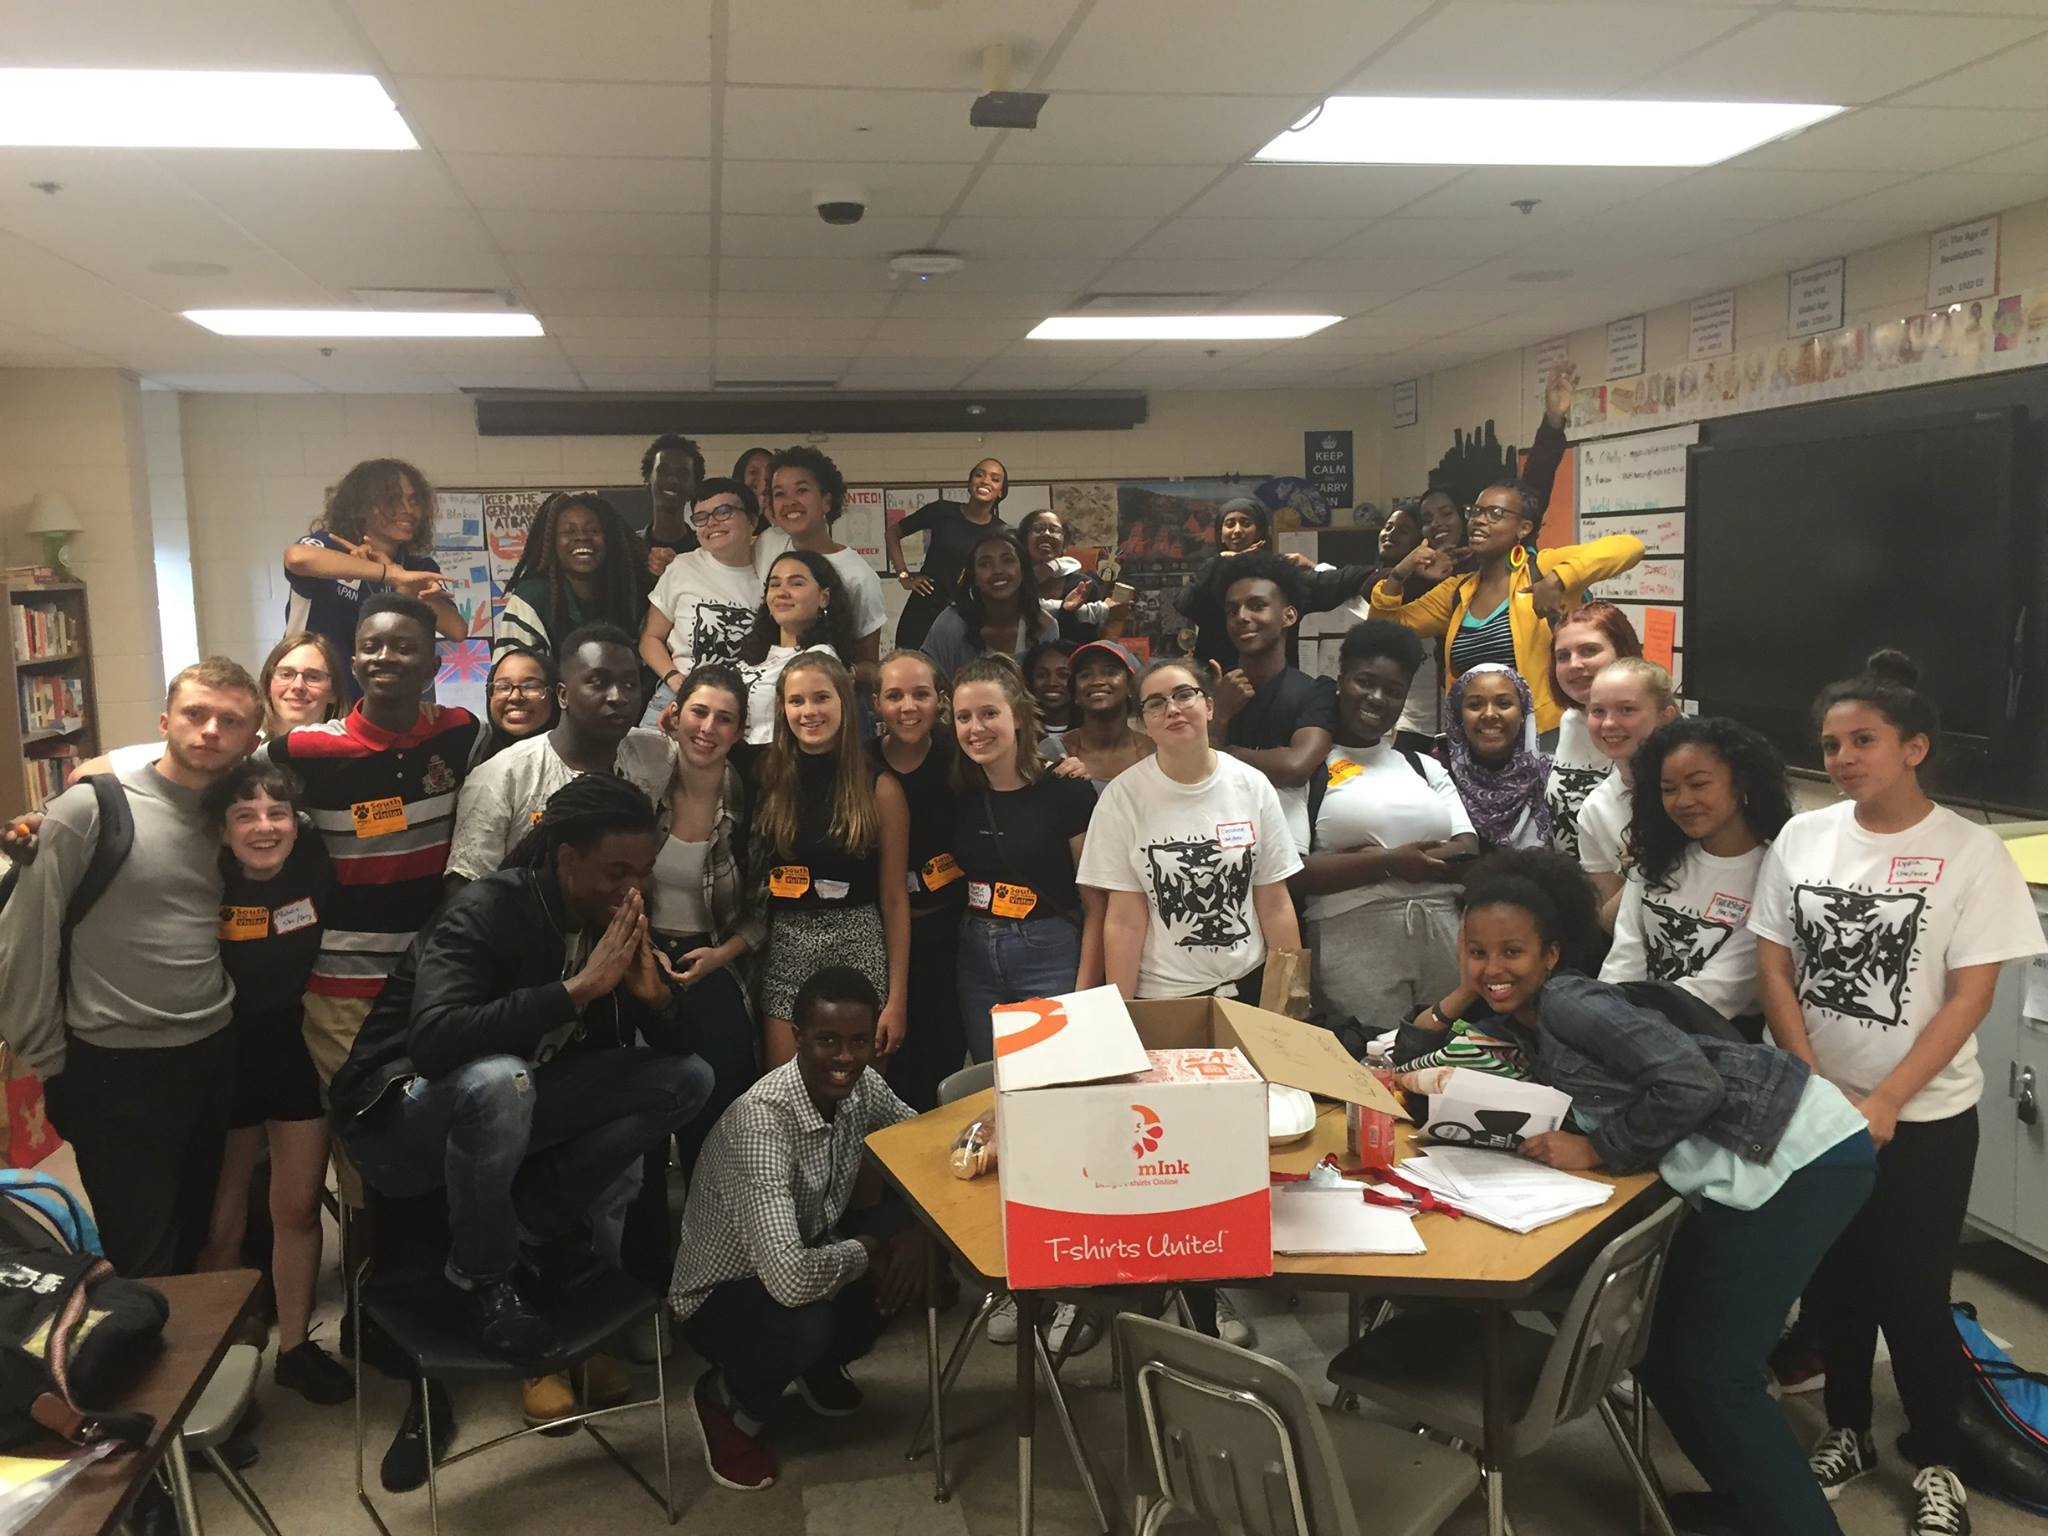 South students and staff as well as outside community members came to lead workshops on race and identity on May 23rd at South. This day was organized and led by SUSOSH (Stand Up Speak Out South High), a student led group aimed to dismantle insitutionalized racism. Photo: Abby Rombalski